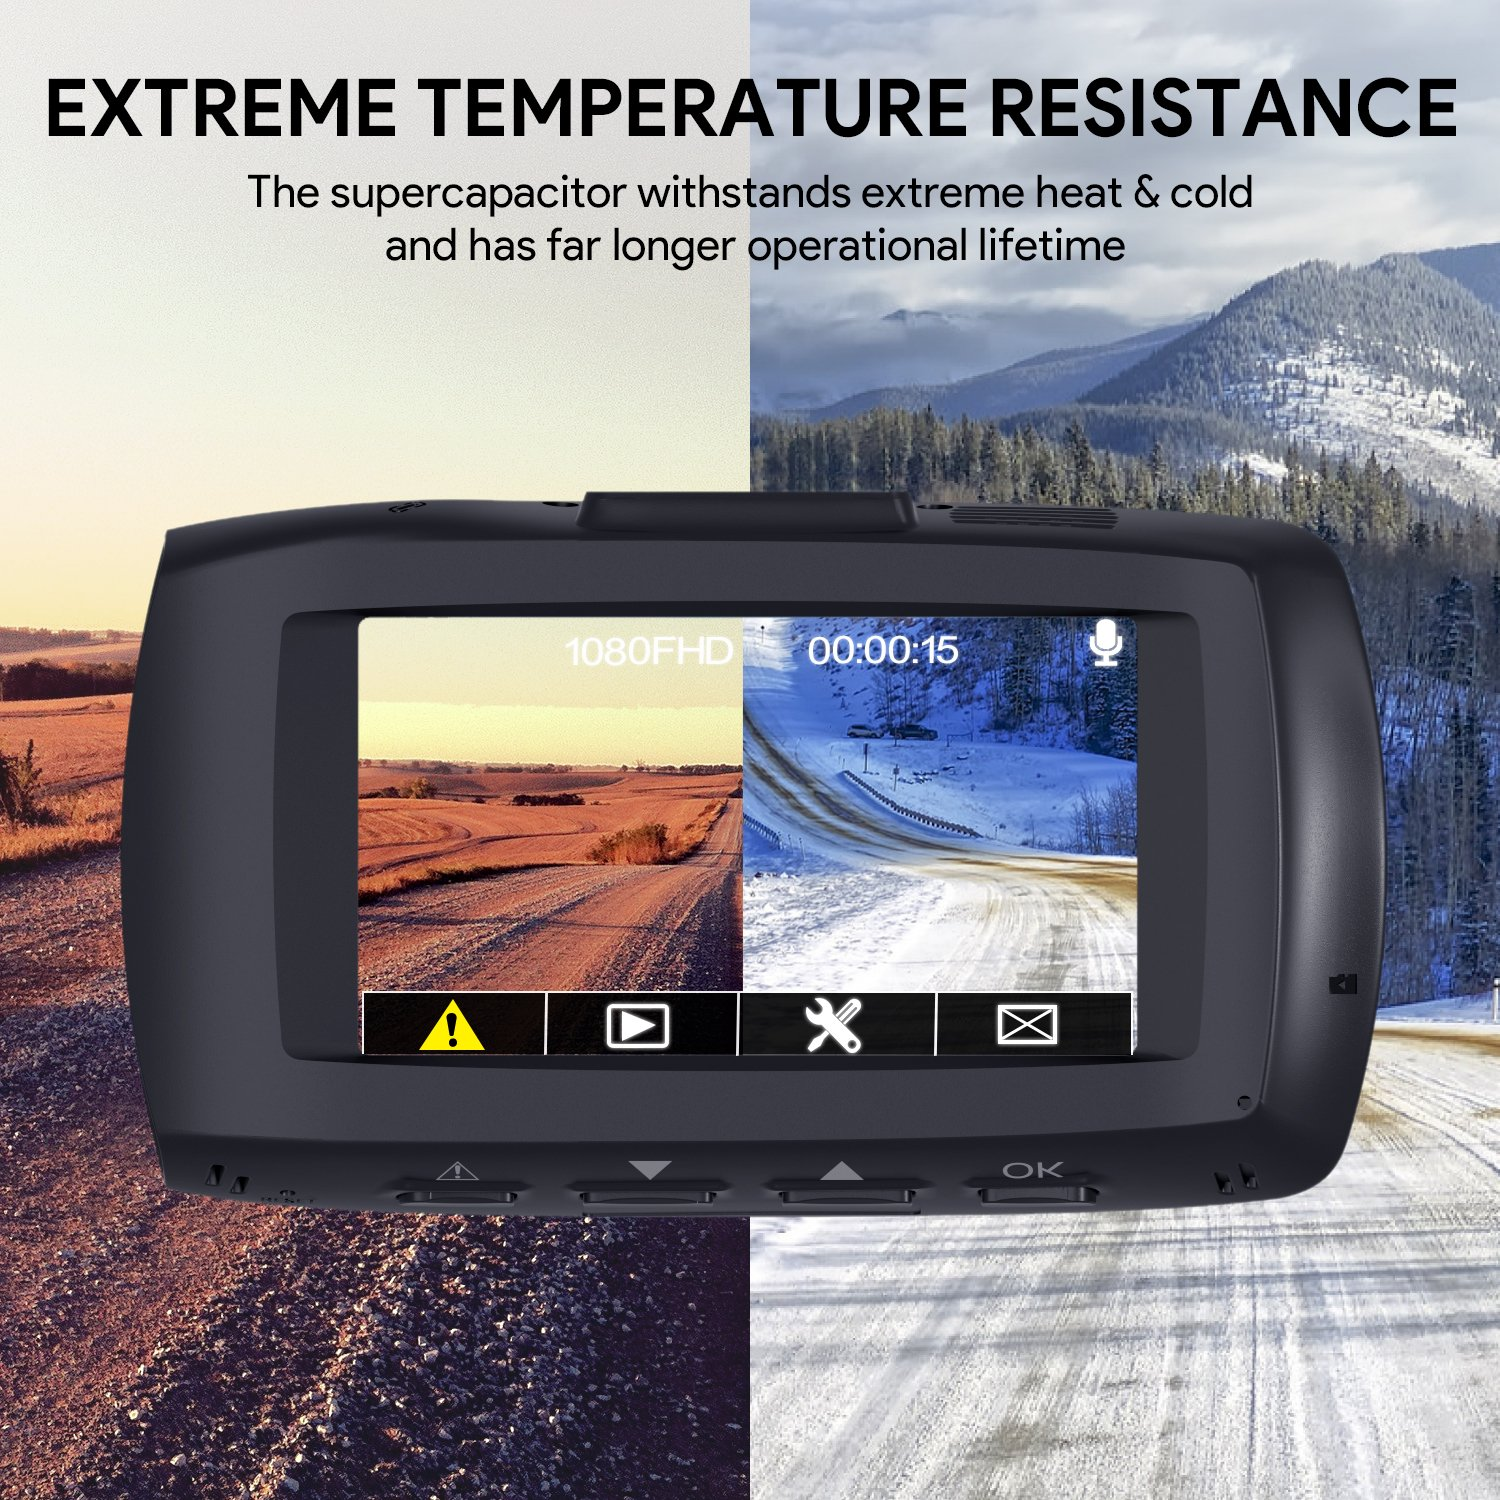 """AUKEY 1080p Dual Dash Cams with 2.7"""" Screen, Full HD Front and Rear Camera, 6-Lane 170° Wide-Angle Lens, G-Sensor, and Dual-Port Car Charger by AUKEY (Image #5)"""